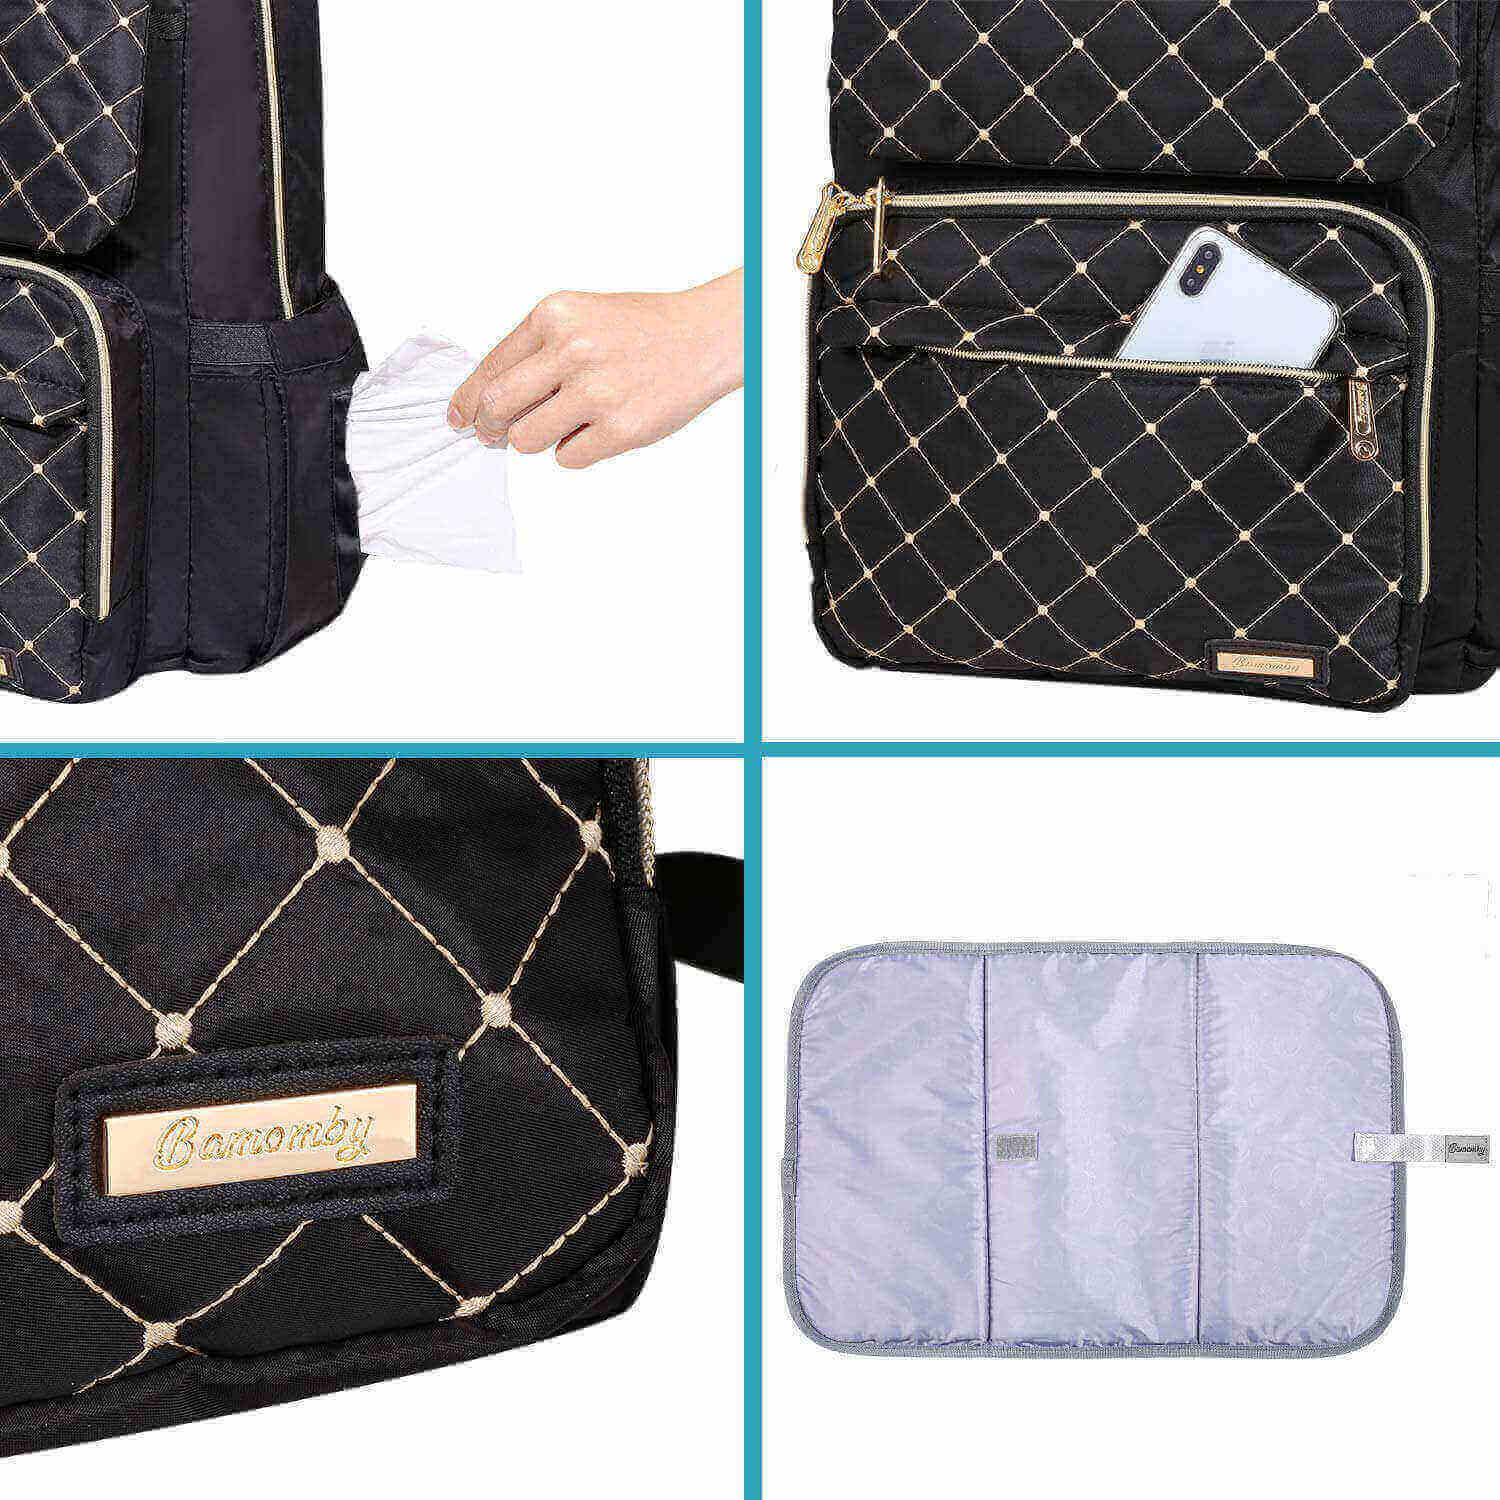 Bamomby Classic Black Diaper Bag Backpack - Bamomby